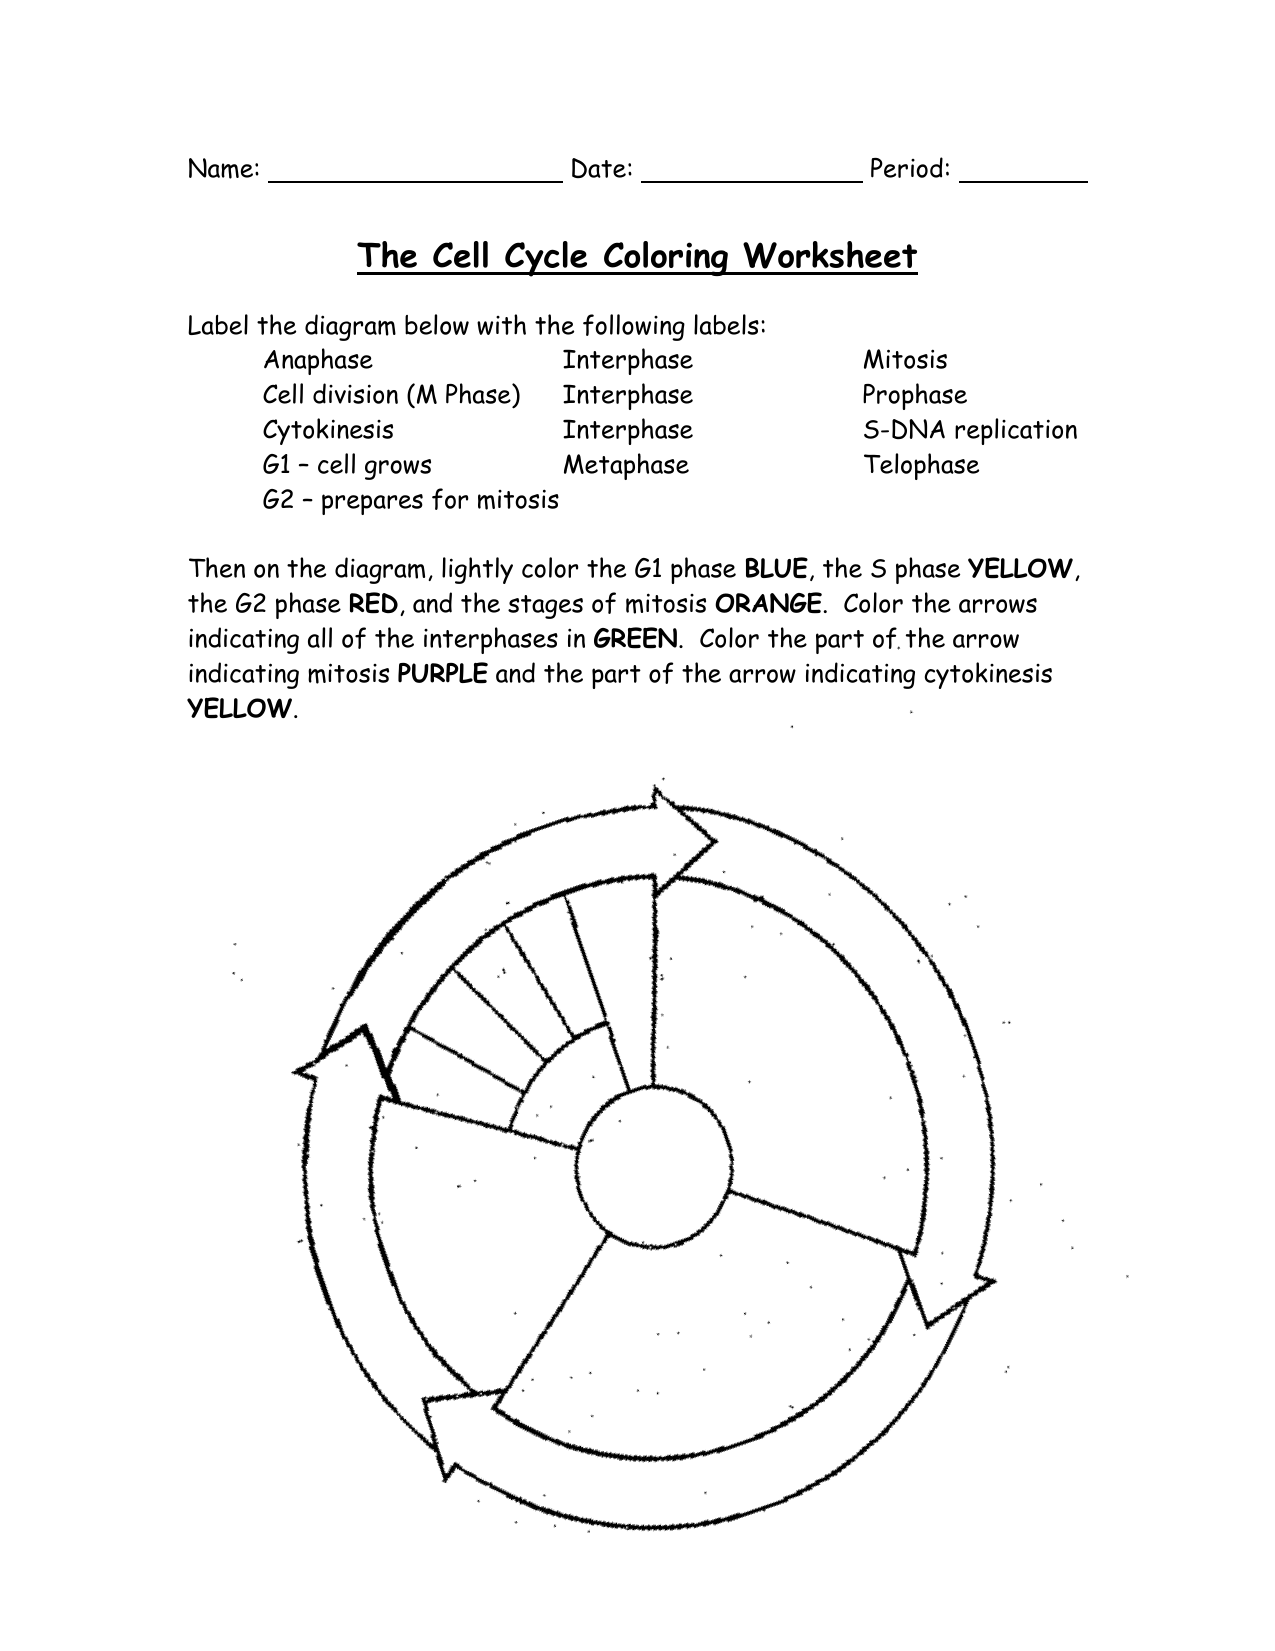 worksheet cell cycle labeling worksheet grass fedjp worksheet study site. Black Bedroom Furniture Sets. Home Design Ideas